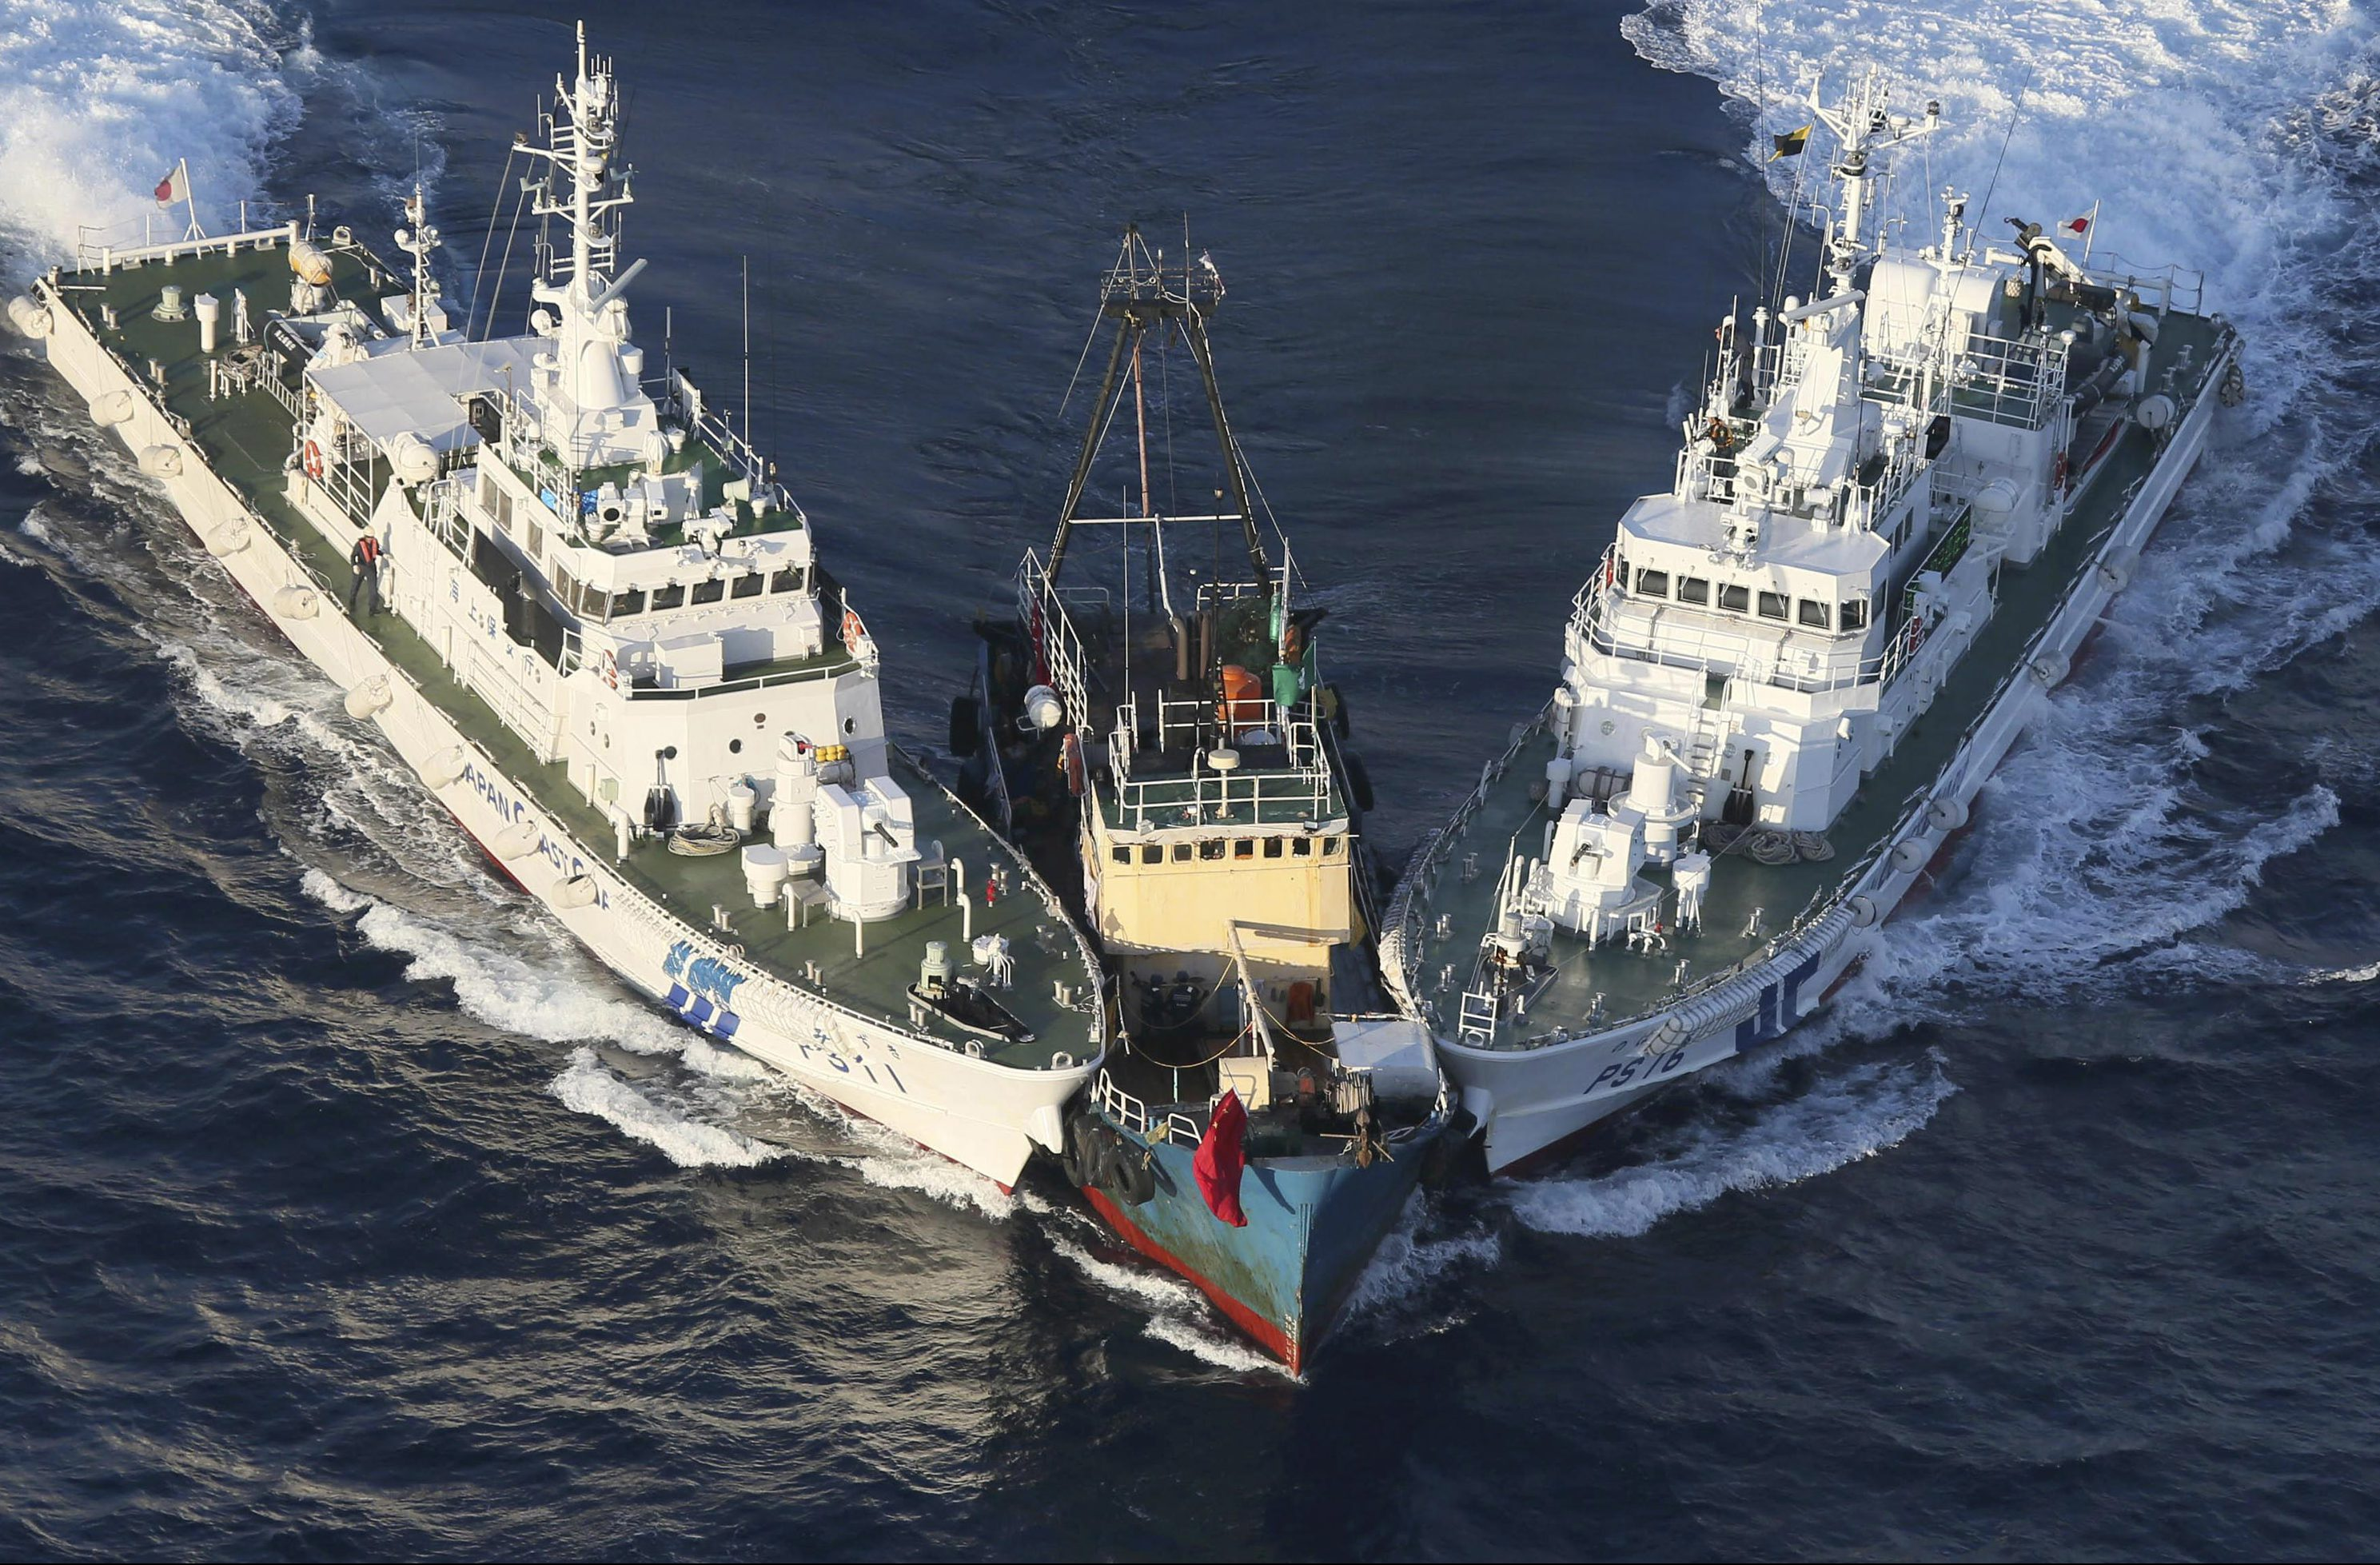 A boat, center, is surrounded by Japan Cost Guard's patrol boats after some activists descended from the boat on Uotsuri Island, one of the islands of Senkaku in Japanese and Diaoyu in Chinese, in East China Sea Wednesday, Aug. 15, 2012. Regional tensions flared on the emotional anniversary of Japan's World War II surrender as activists from China and South Korea used Wednesday's occasion to press rival territorial claims, prompting 14 arrests by Japanese authorities. The 14 people had traveled by boat from Hong Kong to the disputed islands controlled by Japan but also claimed by China and Taiwan.